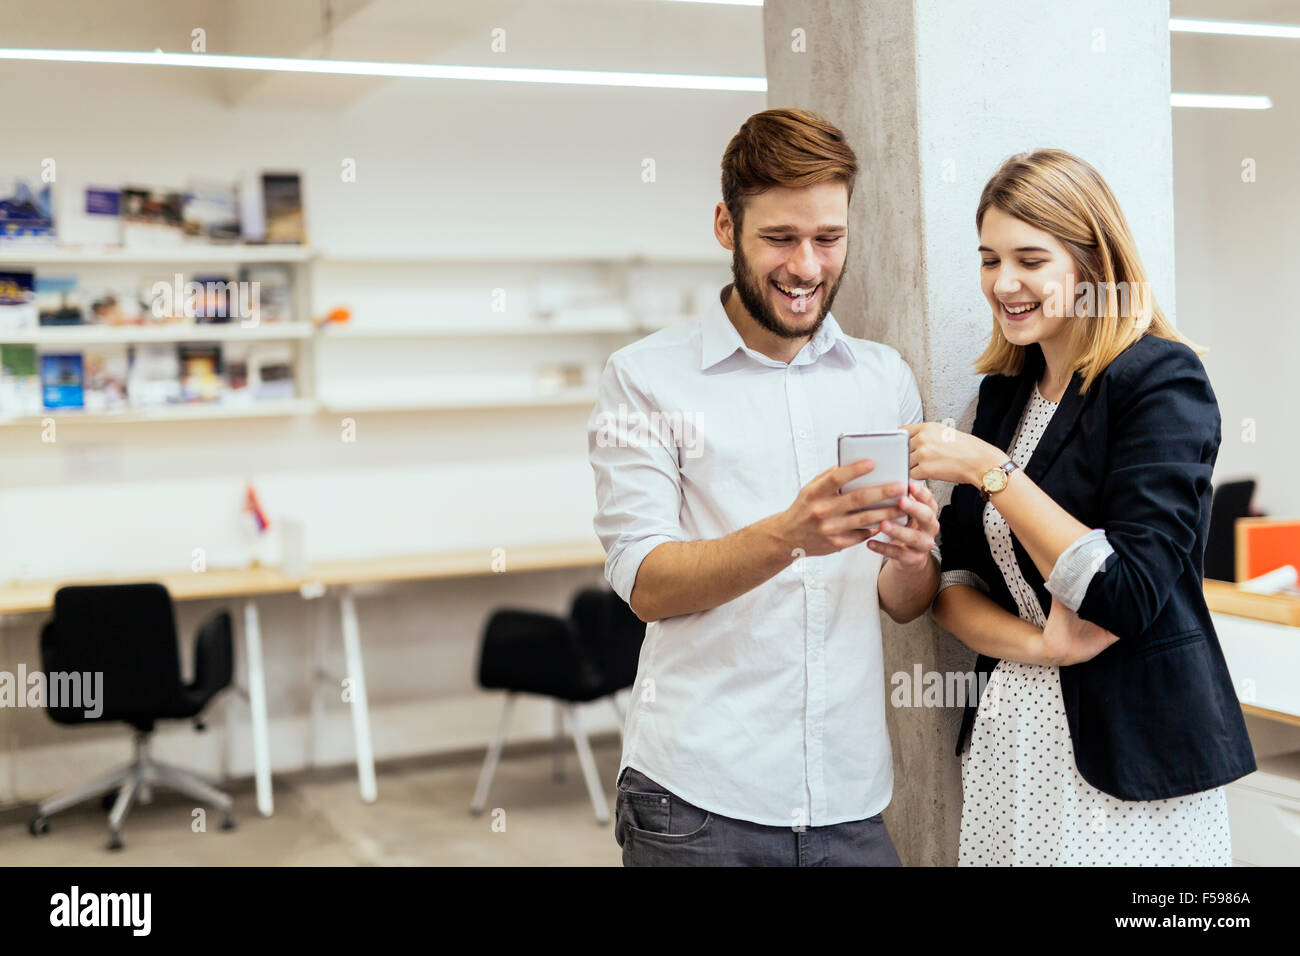 Two colleagues smiling while looking at the phone in a beautiful office Stock Photo